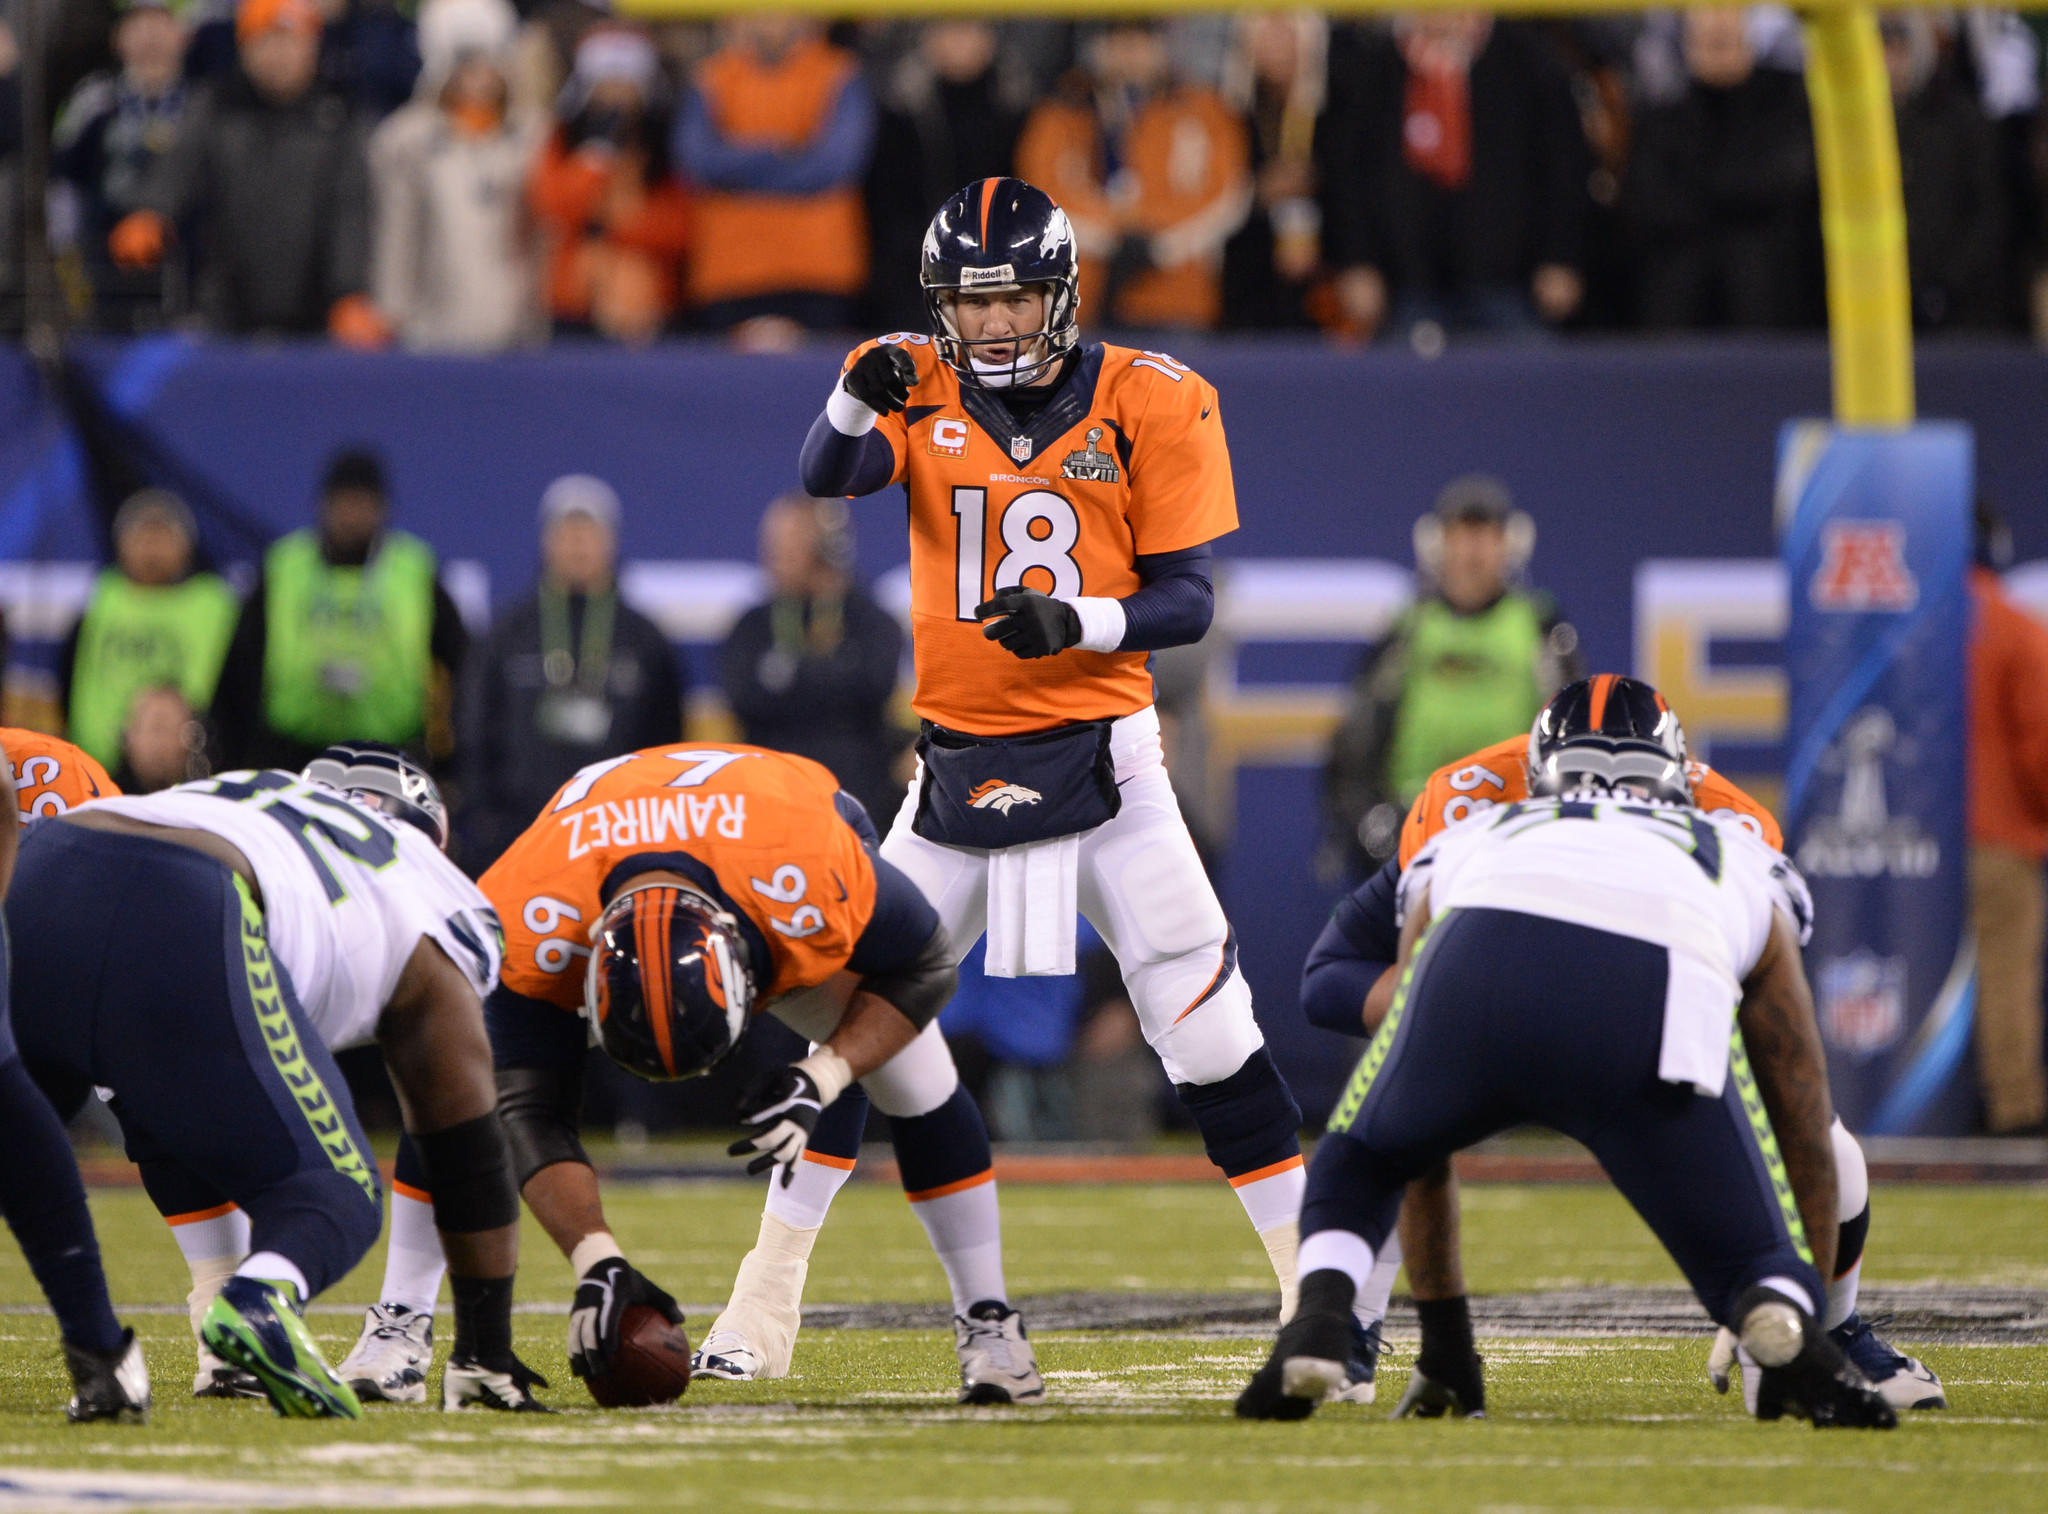 Broncos quarterback Peyton at the line in Super Bowl XLVIII against the Seattle Seahawks.